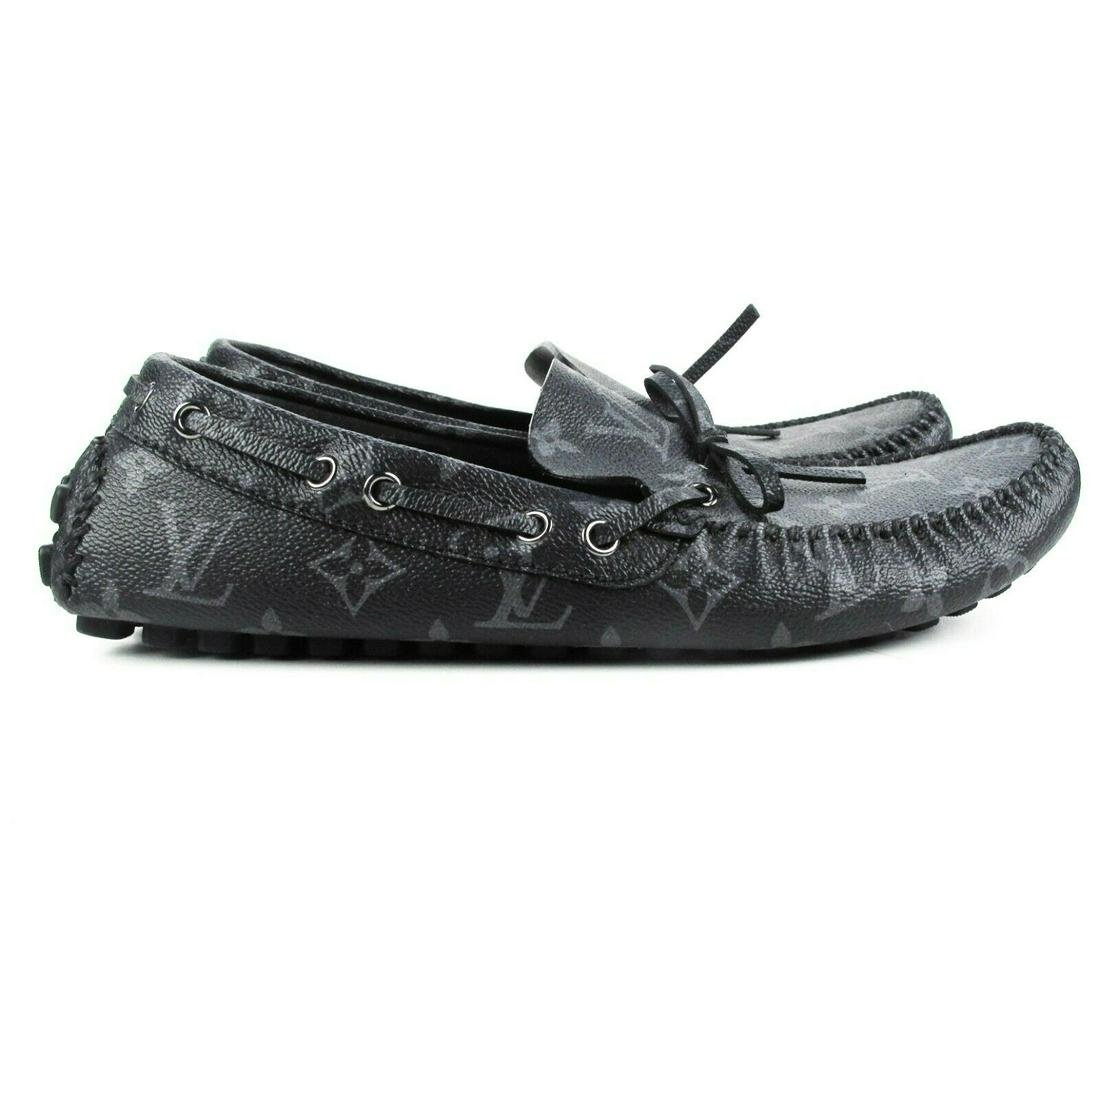 Louis Vuitton - LV Arizona Moccasin Loafers - Womens 9